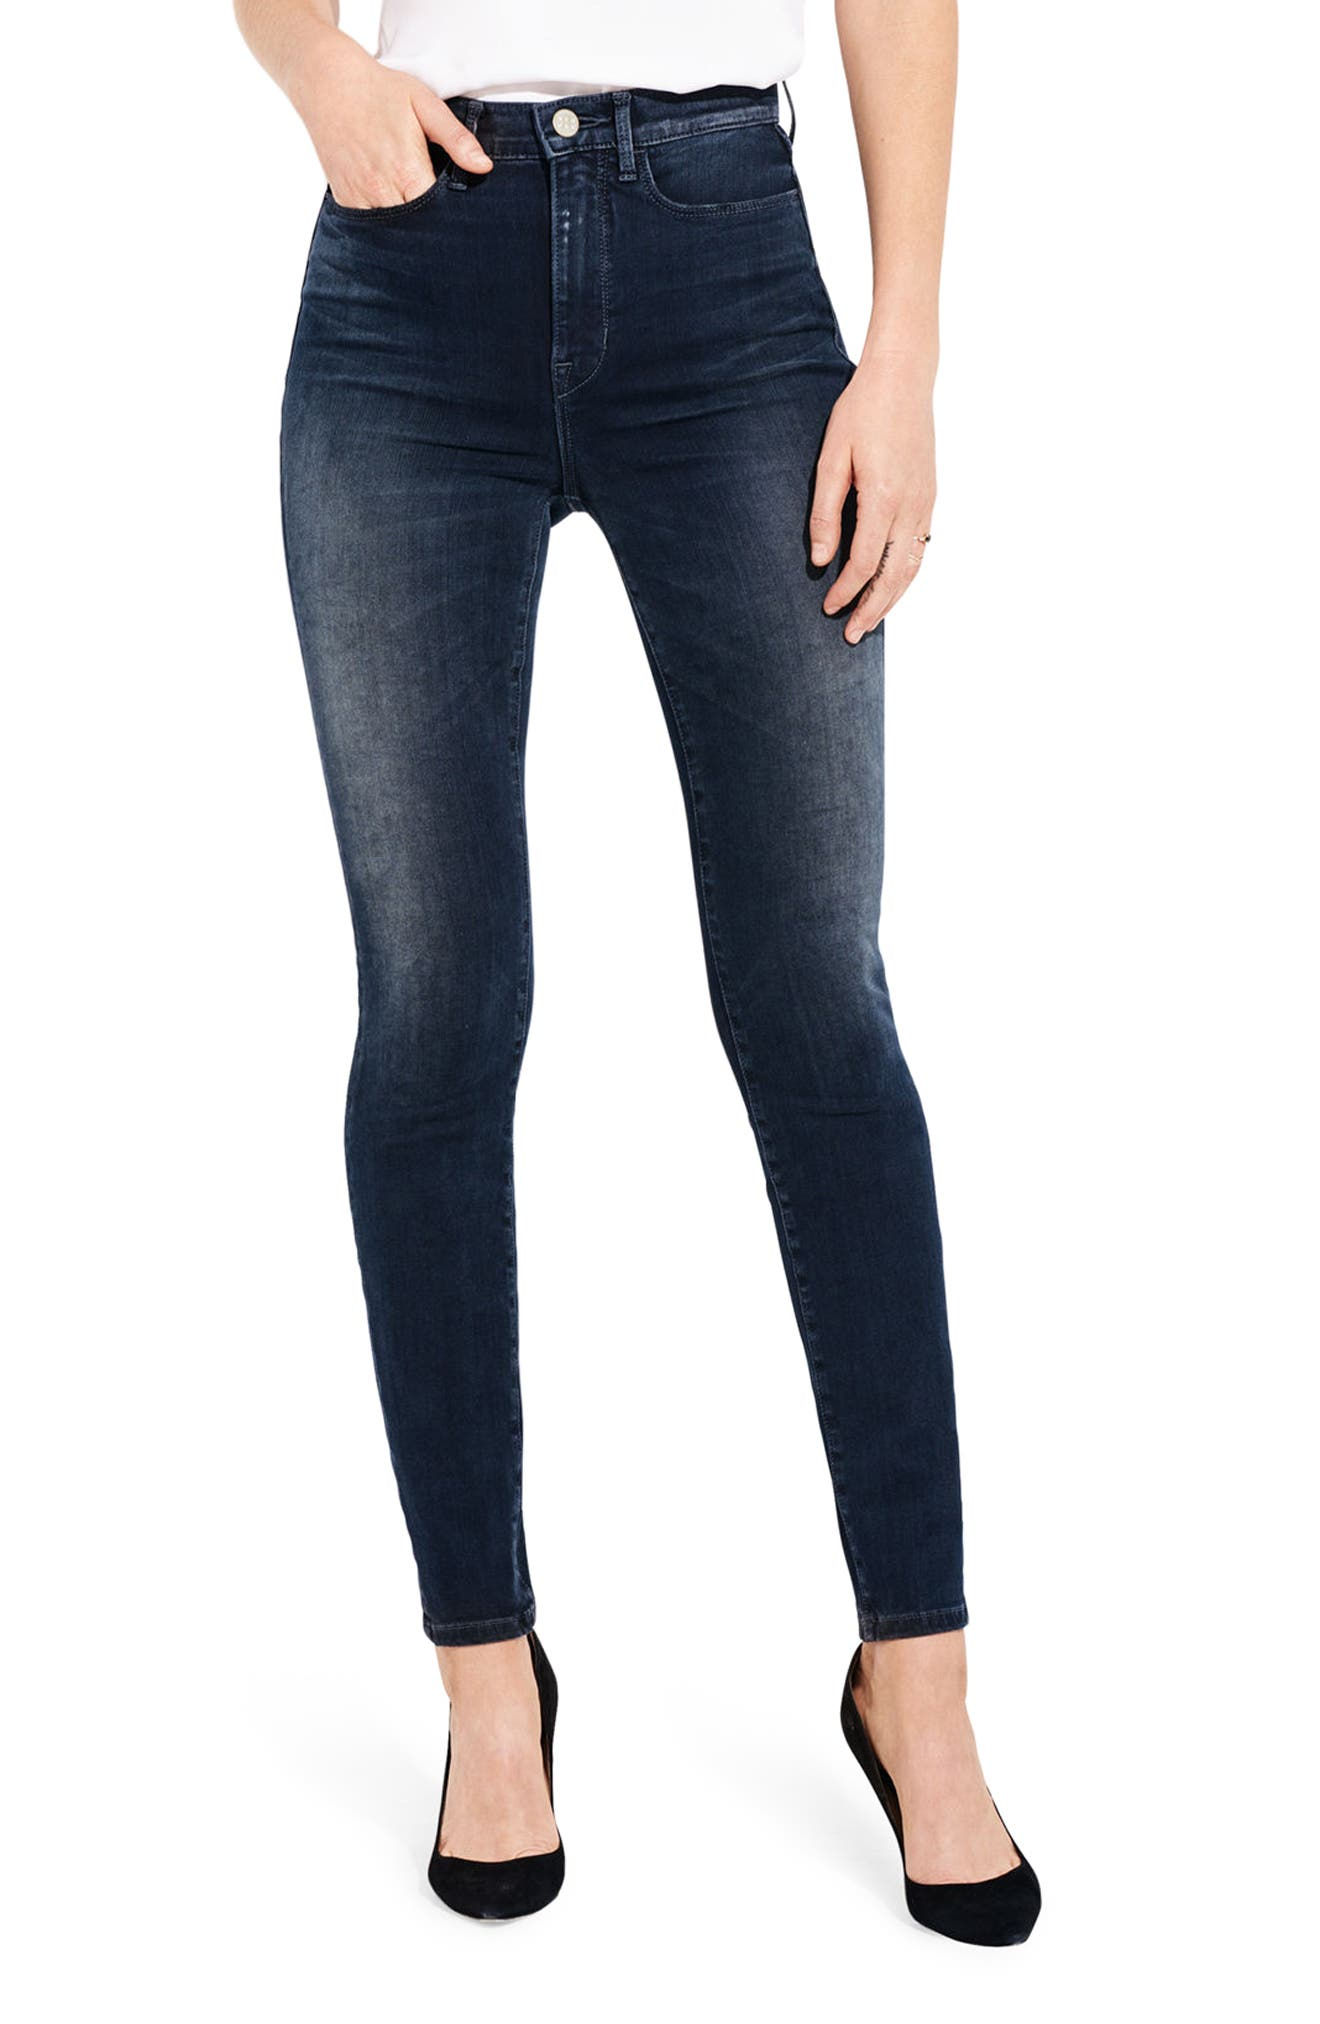 The Hi Rise High Waist Skinny Jeans,                             Main thumbnail 1, color,                             409